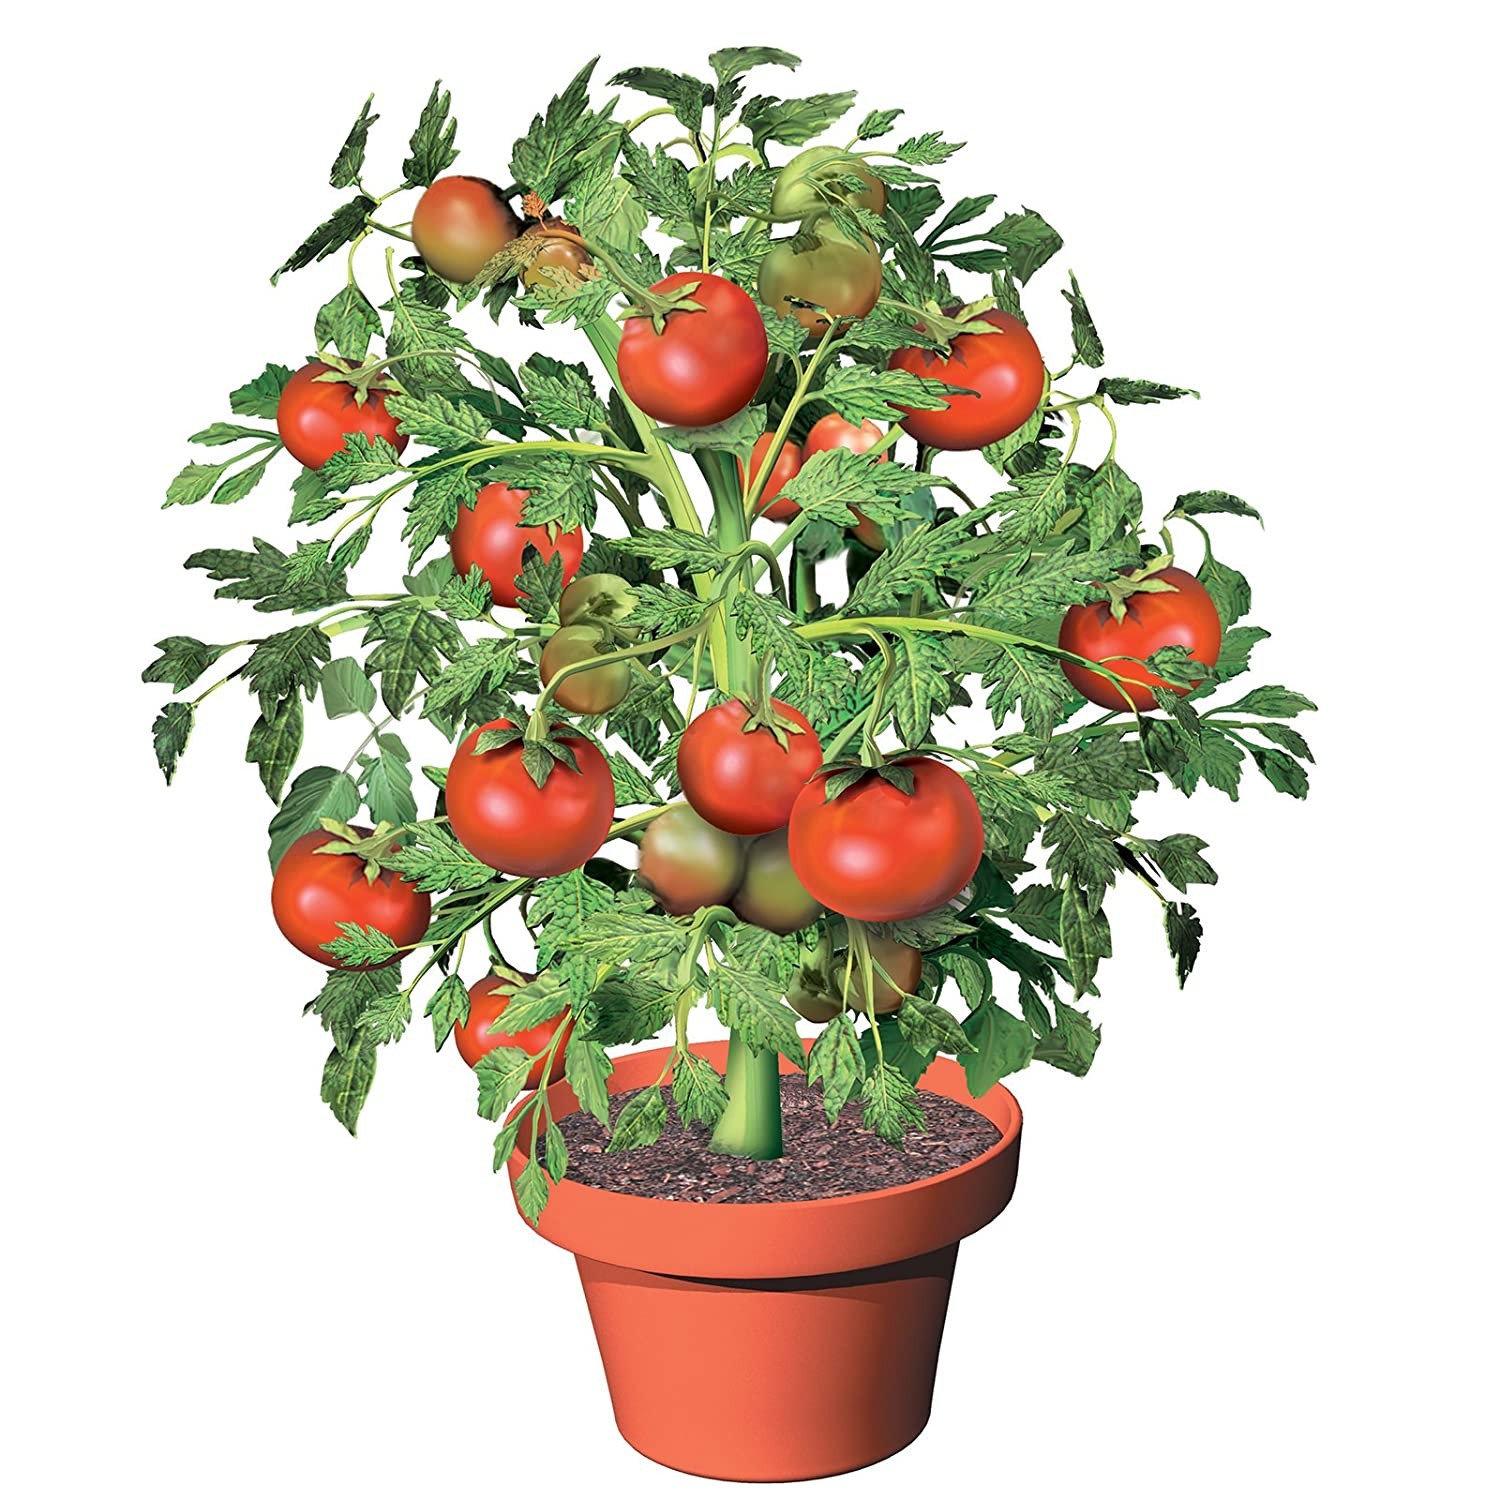 Amazon Grow Your Own Flower Pot Tomatoes set of 3 Garden